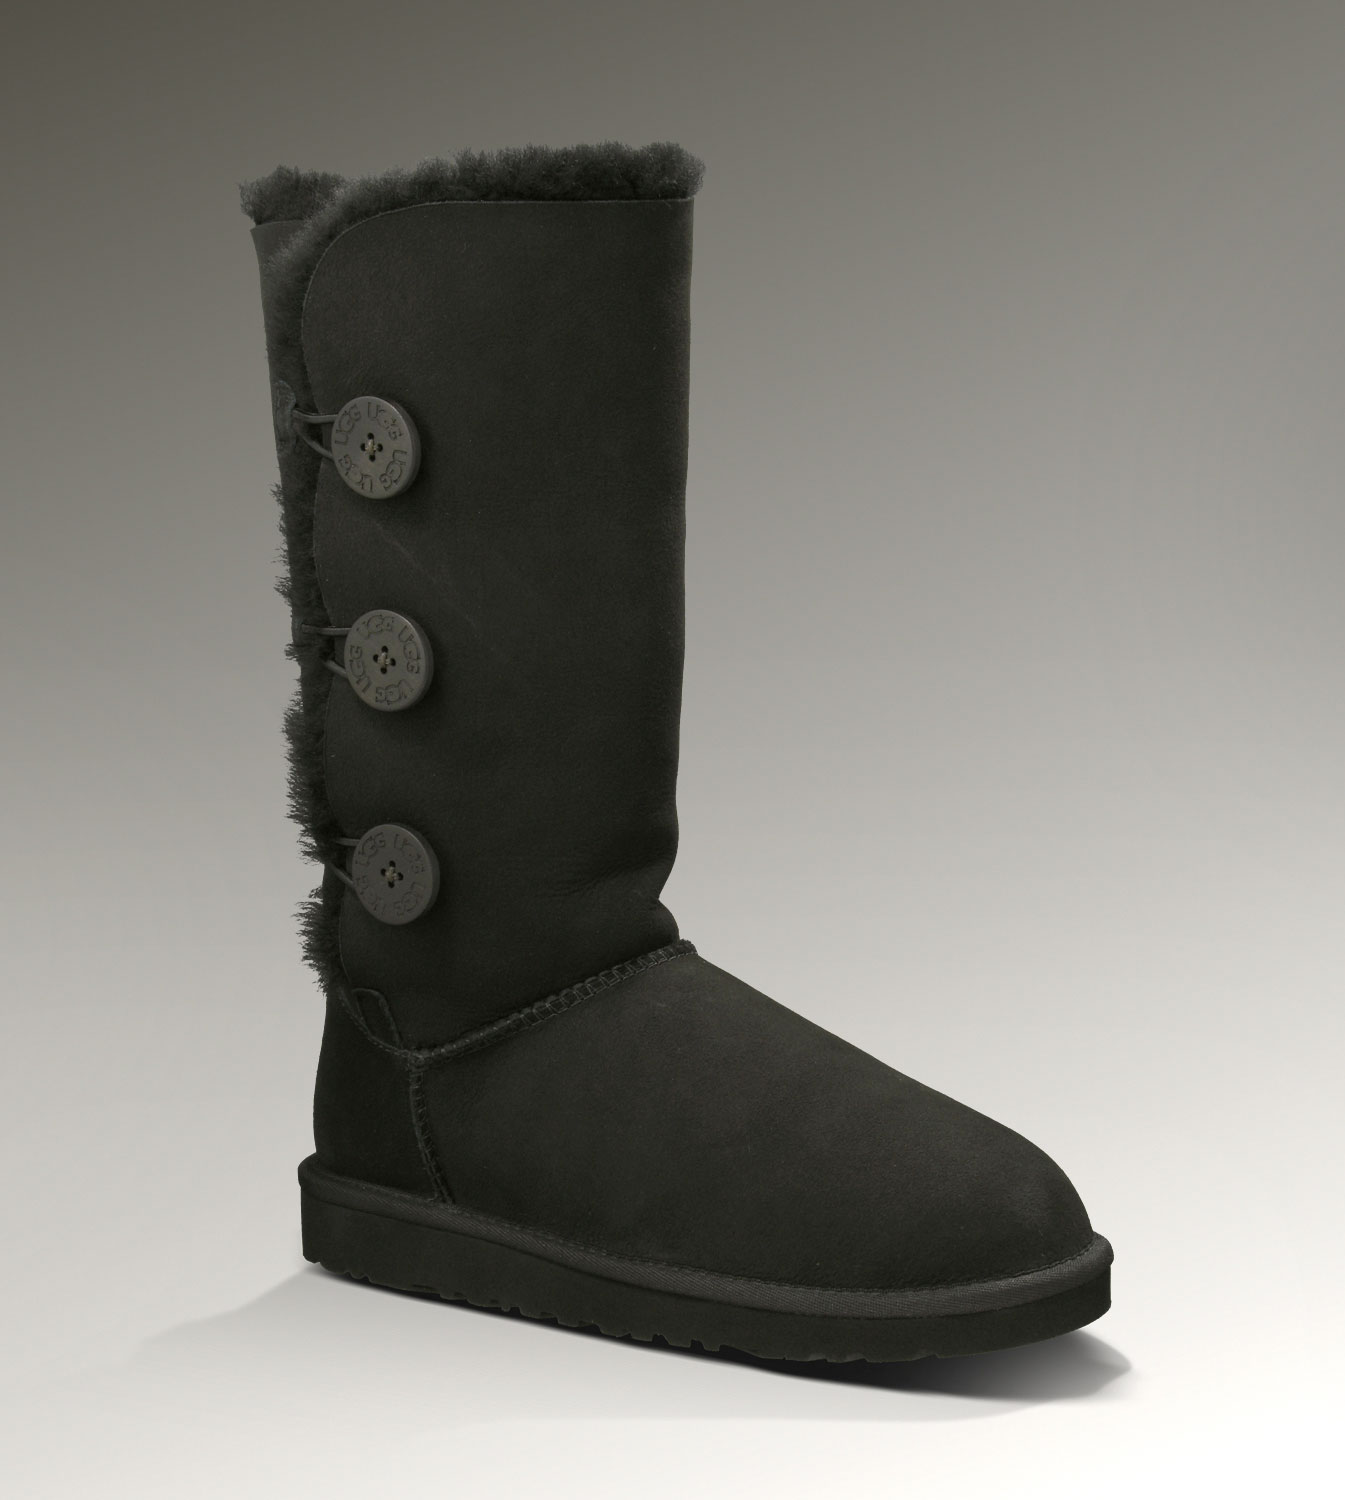 UGG Bailey Button Triplet 1873 Black Boots